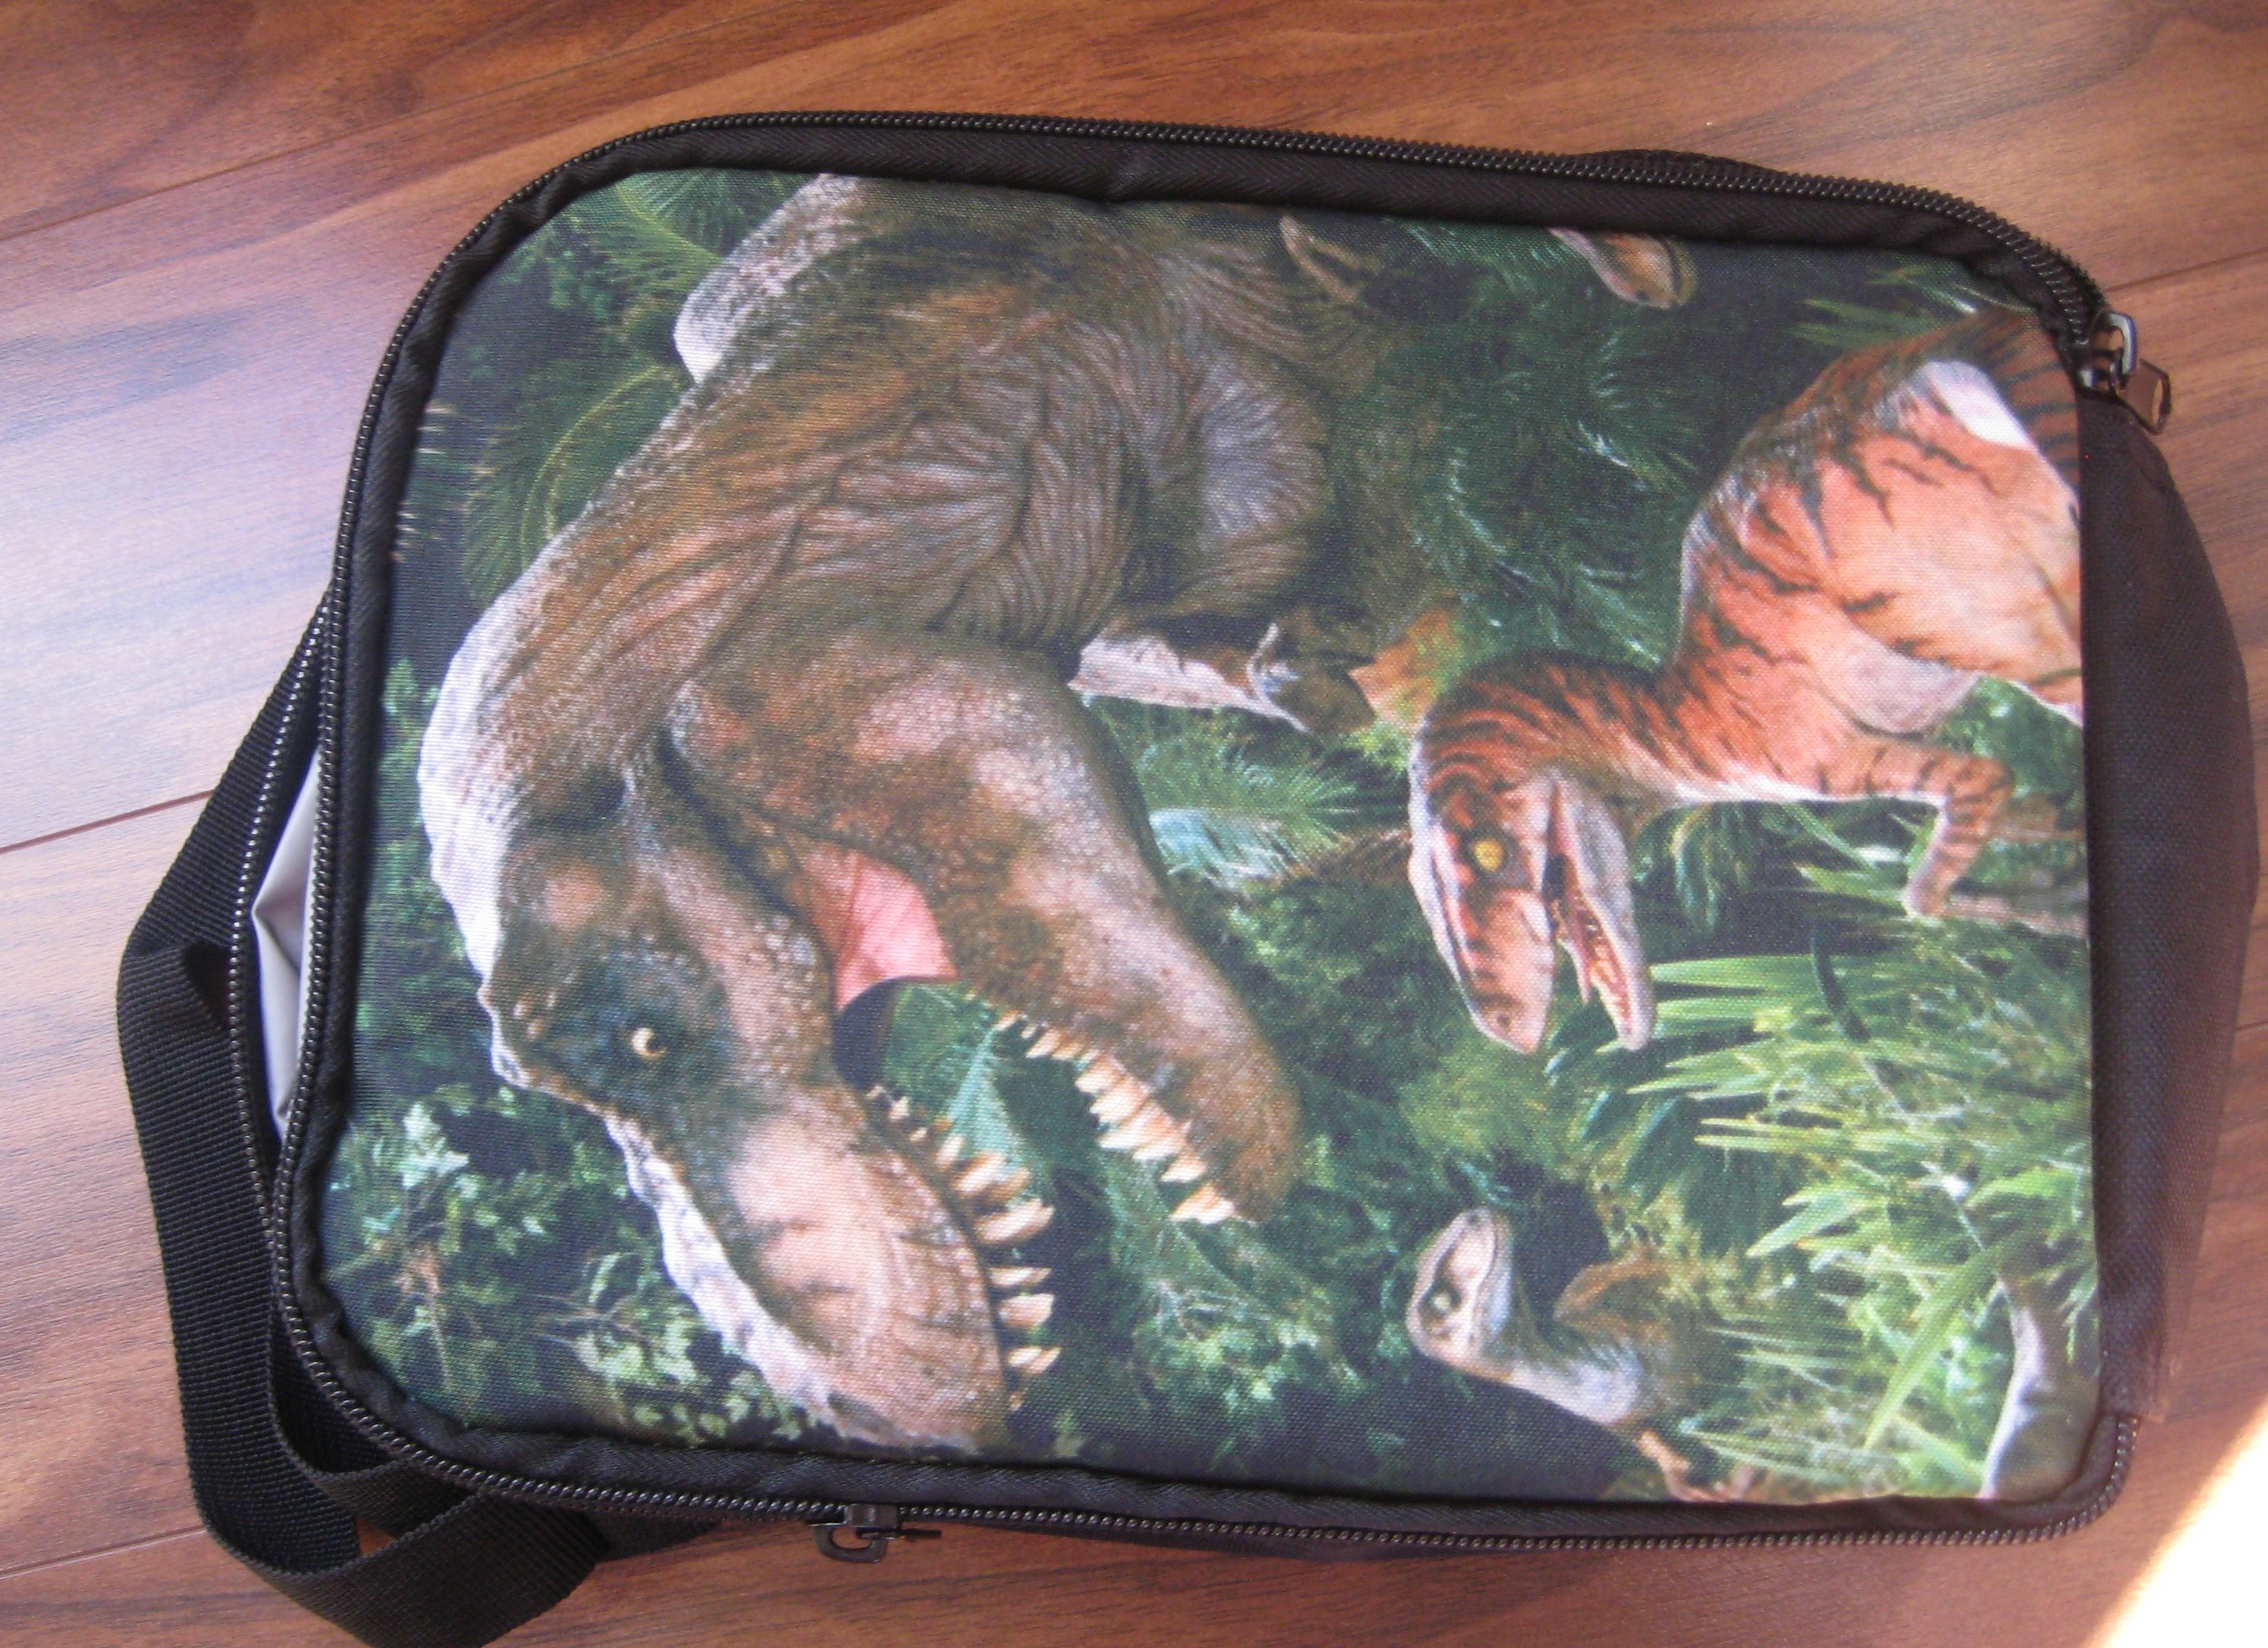 Universal Children Jurassic Worlds 2 Lunch Bag Movie Evolution Dlc Park Rectangular Lunch Tote Box For Boys Teenages Stdents New photo review